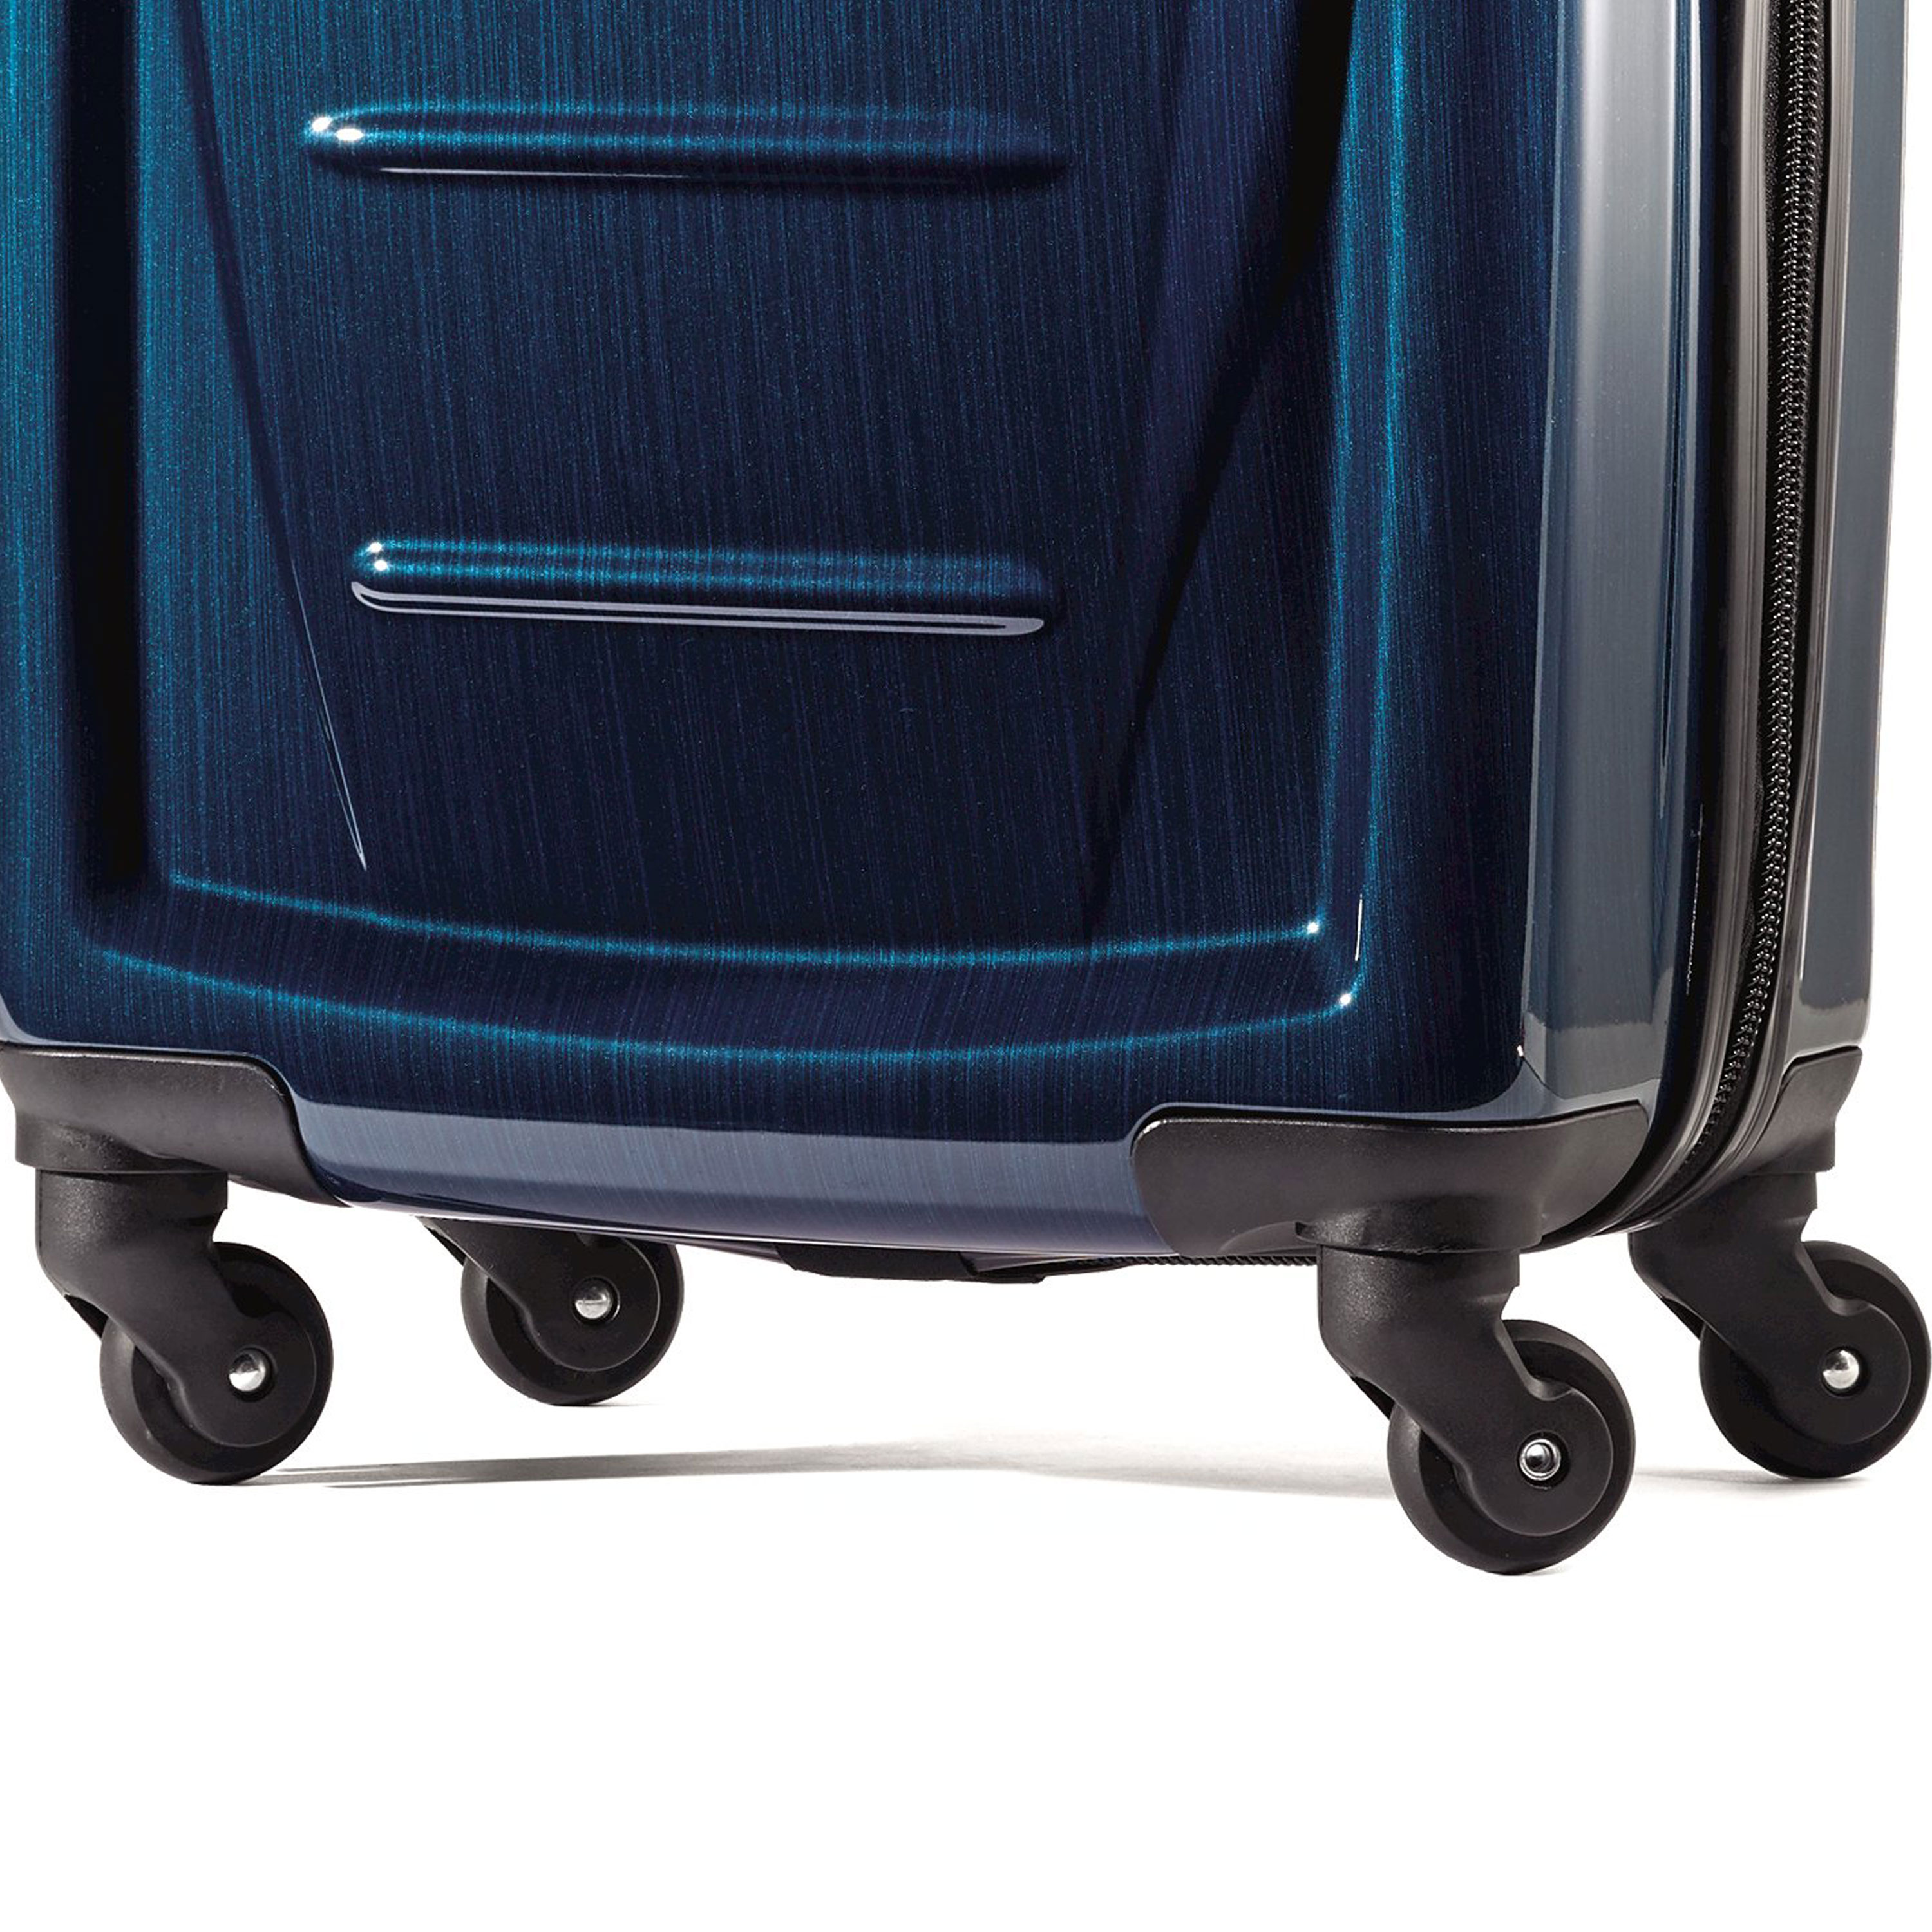 Samsonite-Winfield-2-Fashion-Spinner-Luggage thumbnail 28